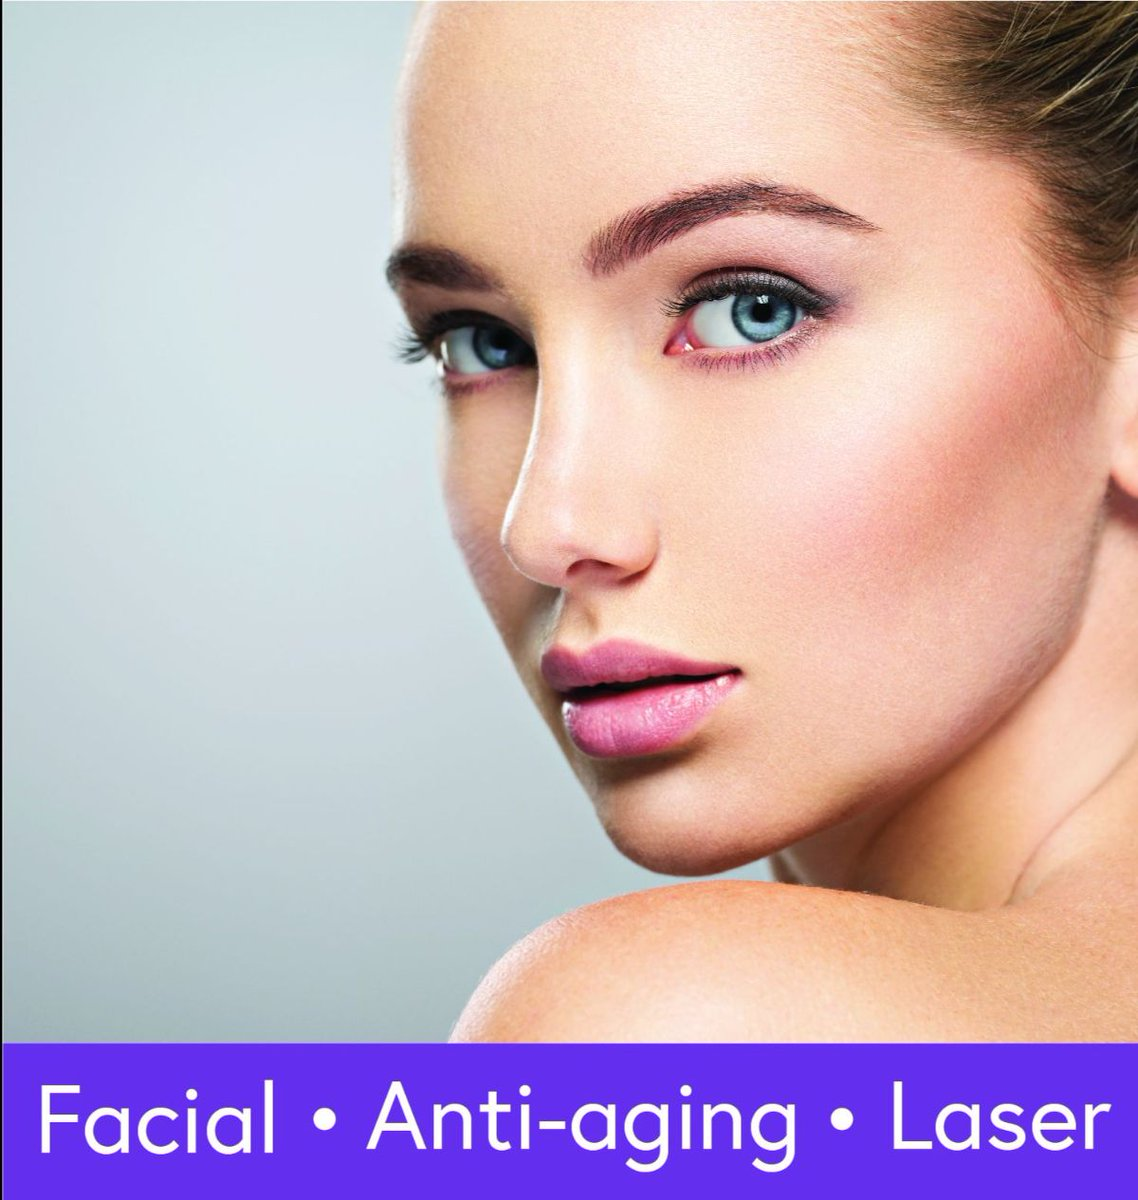 Don't miss out on this one! Facial or Laser treatment starting at $89 - https://mailchi.mp/6cc6deccfc39/dont-miss-out-on-this-one-facial-or-laser-treatment-starting-at-89…  #surrey #vancouver #galvanic #skin #facial #glycolic #peel #radiofrequency #ultrasonic #collagen #stimulation  #laser #beauty #wrinkle #reduction #tightening #microneedling #beautypic.twitter.com/A65OYFqquw